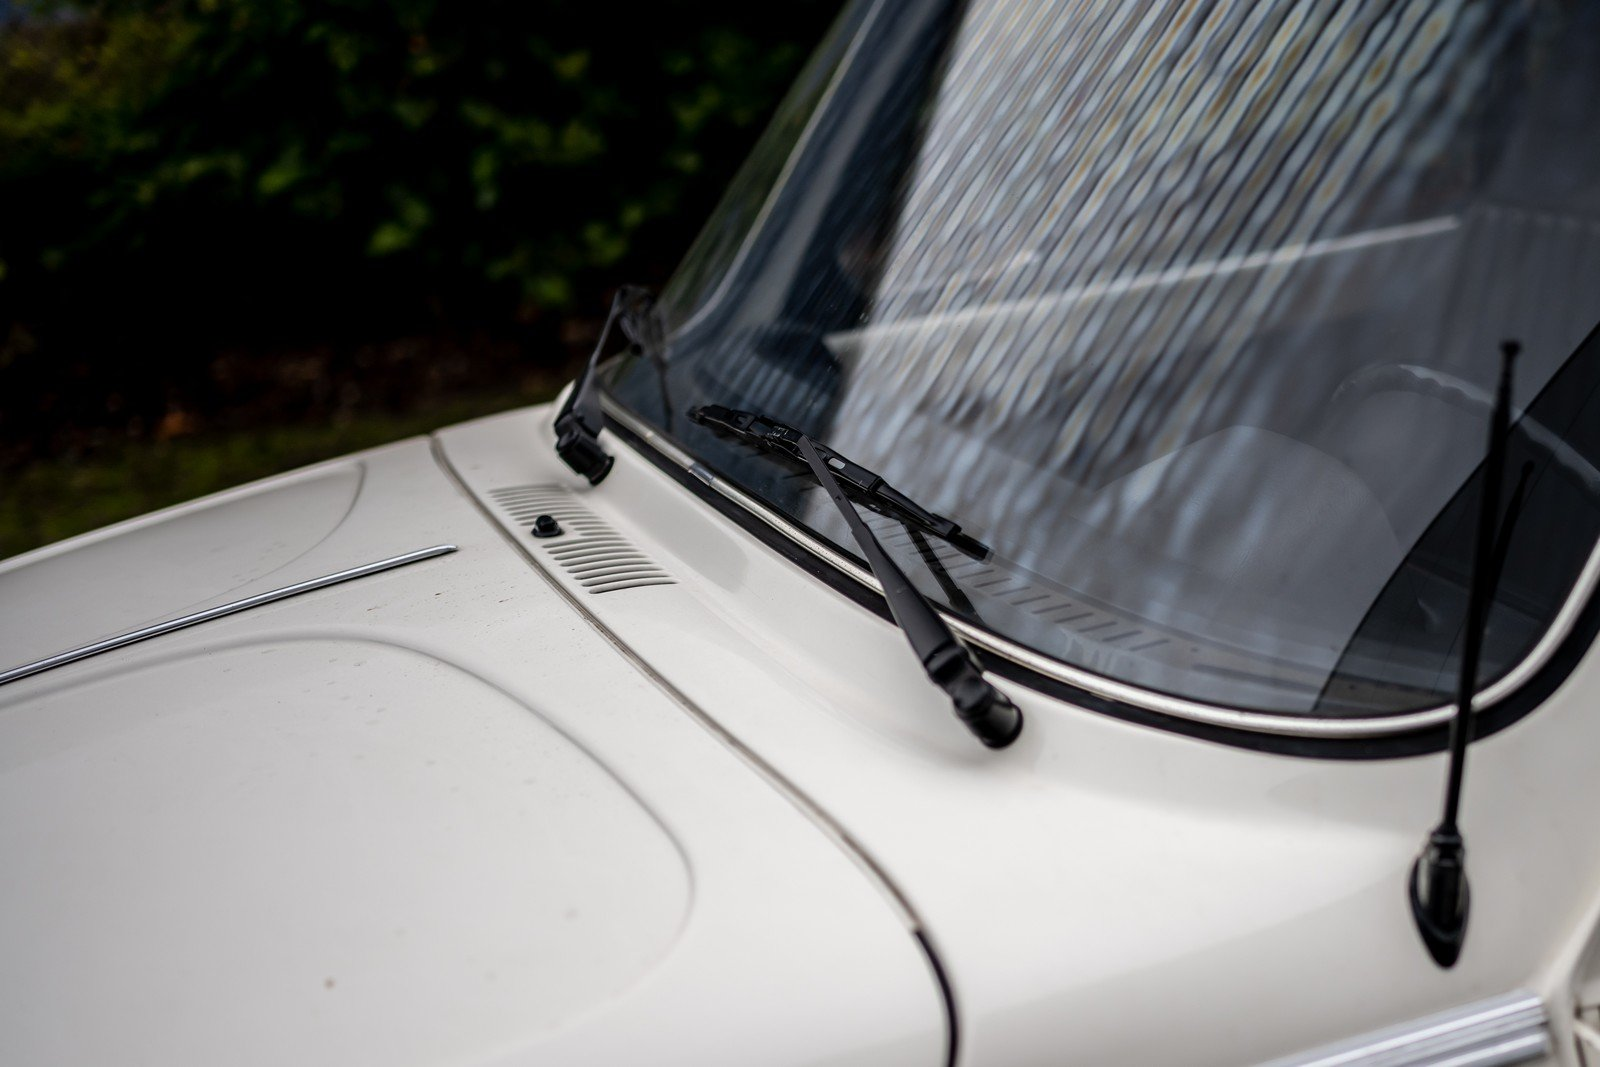 1973 Volkswagen Beetle Type 1303 Cabriolet For Sale (picture 29 of 39)